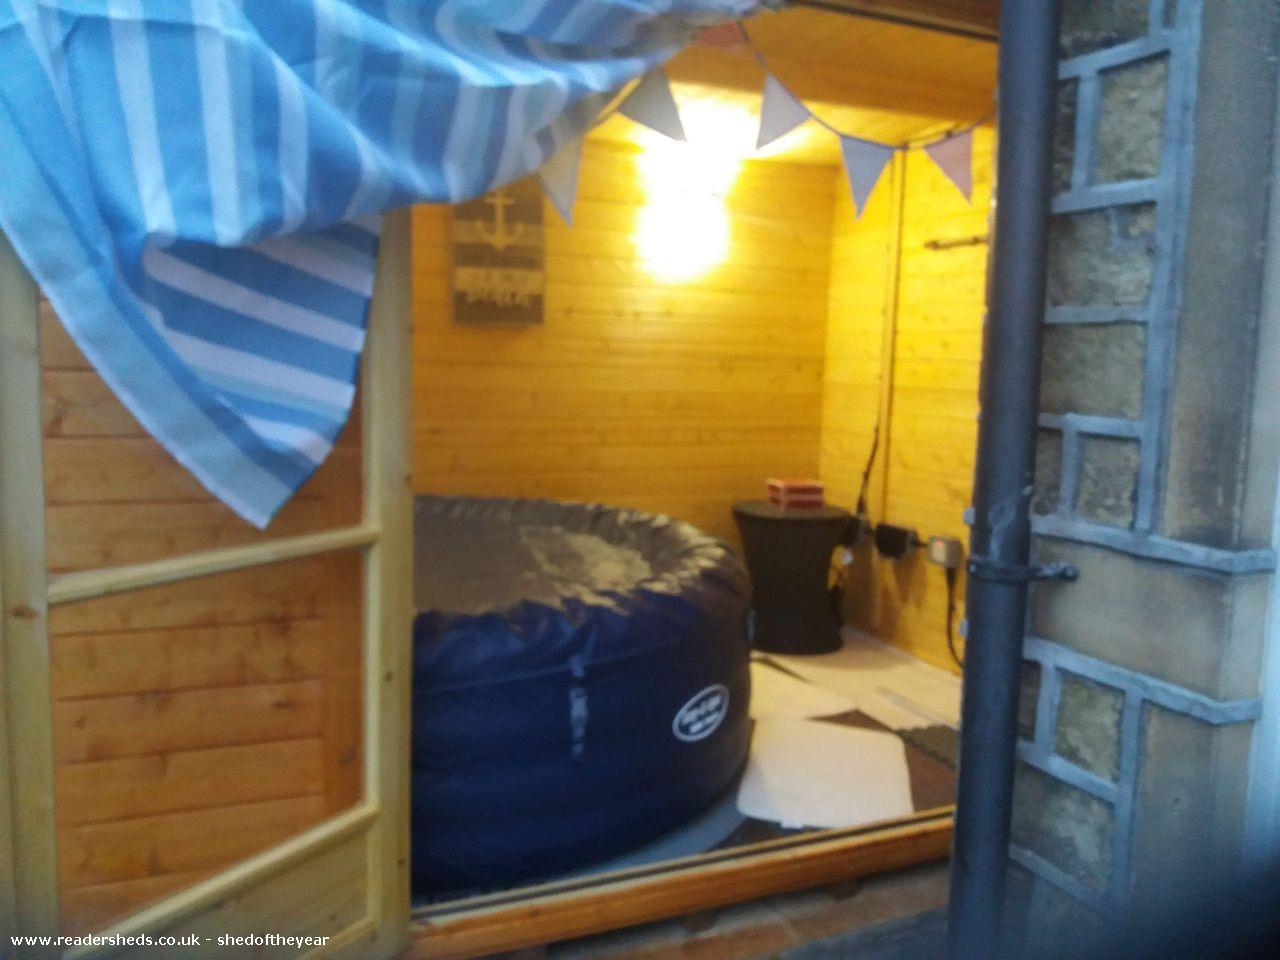 Photo of Mandy's shed, entry to Shed of the year